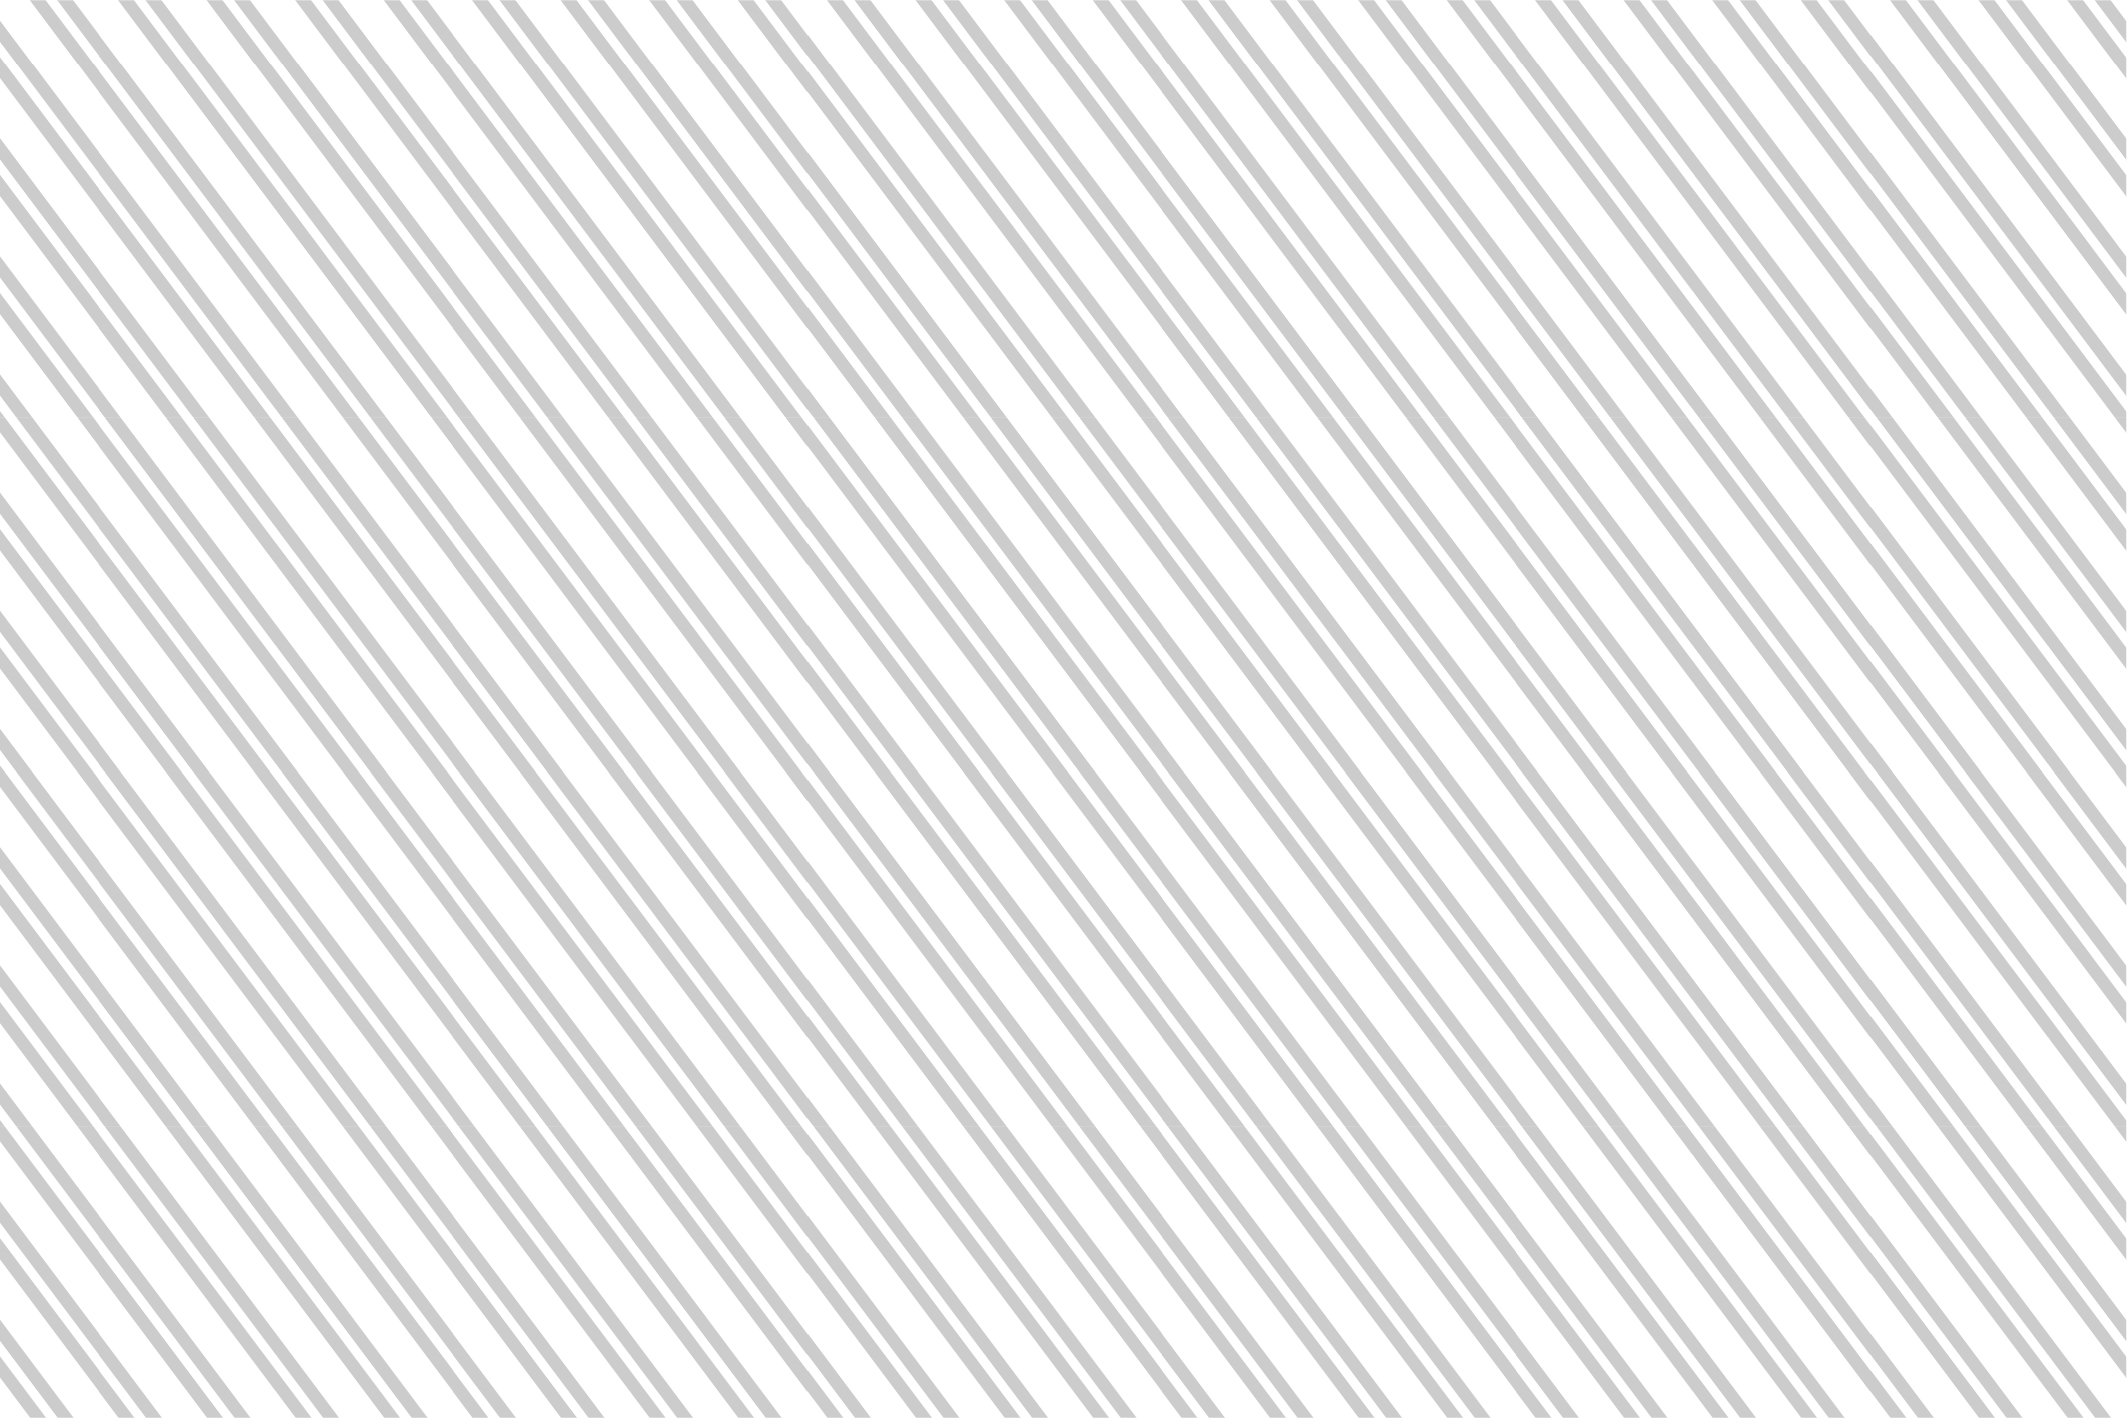 Striped seamless patterns. example image 4